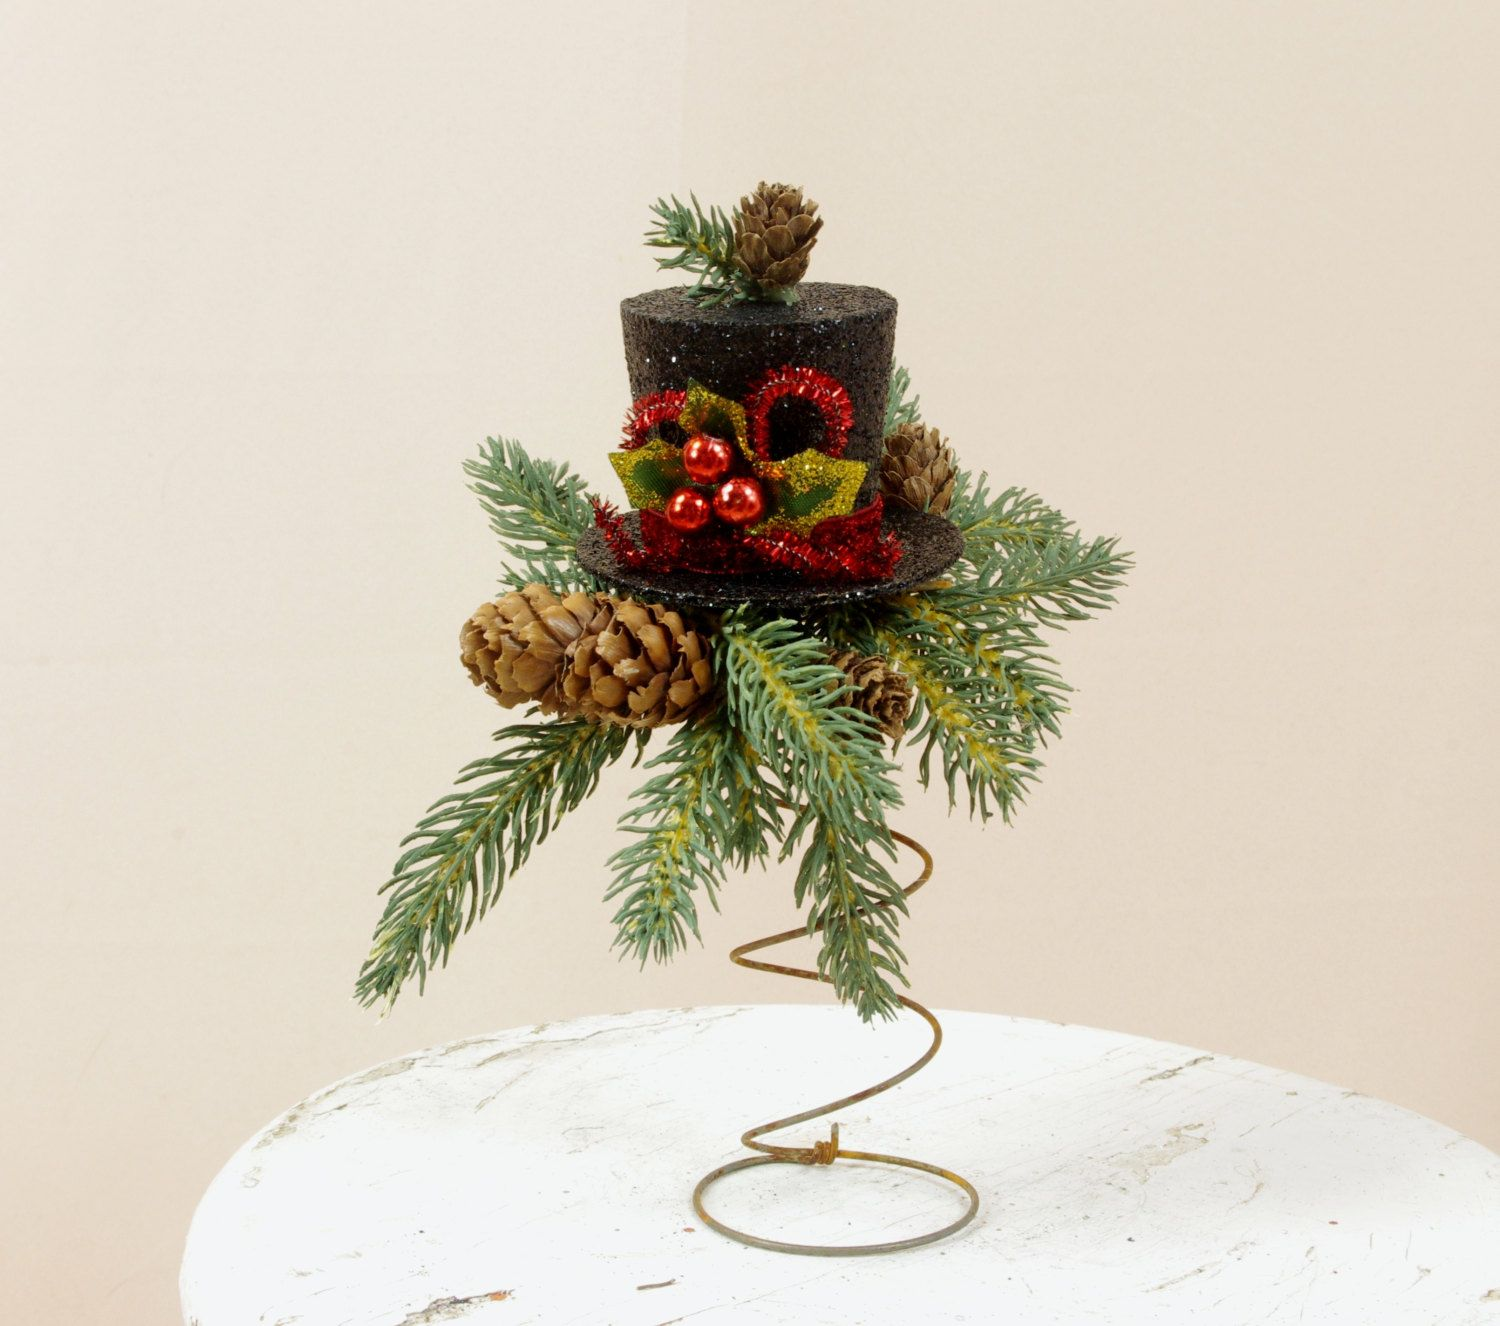 Top Hat Christmas Decor Black Top Hat Tree Topper Holiday Decor